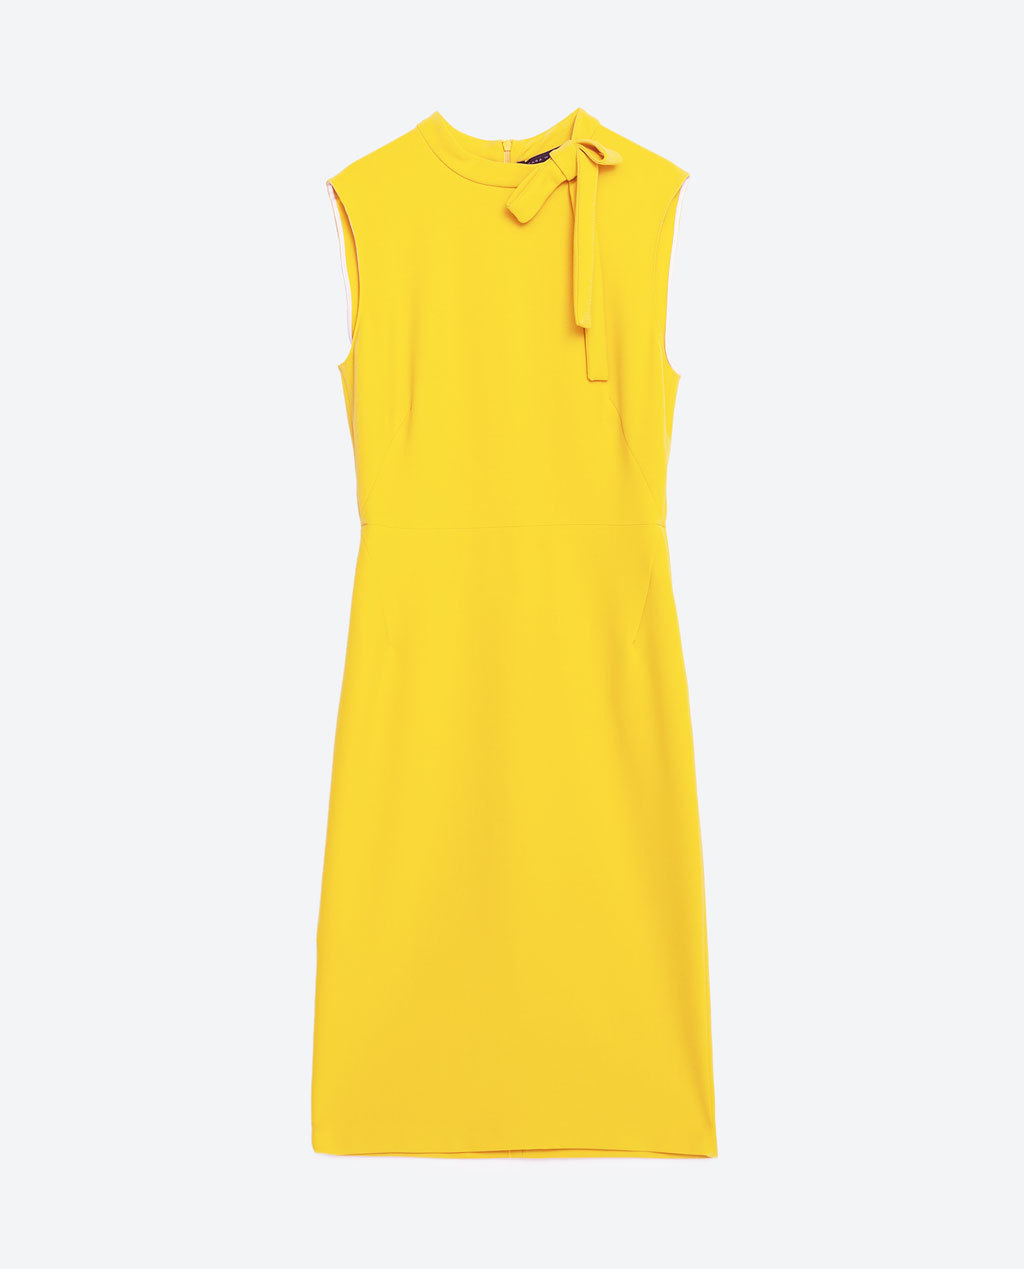 Tube Dress - style: shift; fit: tailored/fitted; pattern: plain; sleeve style: sleeveless; hip detail: fitted at hip; predominant colour: yellow; length: just above the knee; fibres: polyester/polyamide - stretch; neckline: crew; sleeve length: sleeveless; texture group: crepes; pattern type: fabric; occasions: creative work; season: s/s 2016; wardrobe: highlight